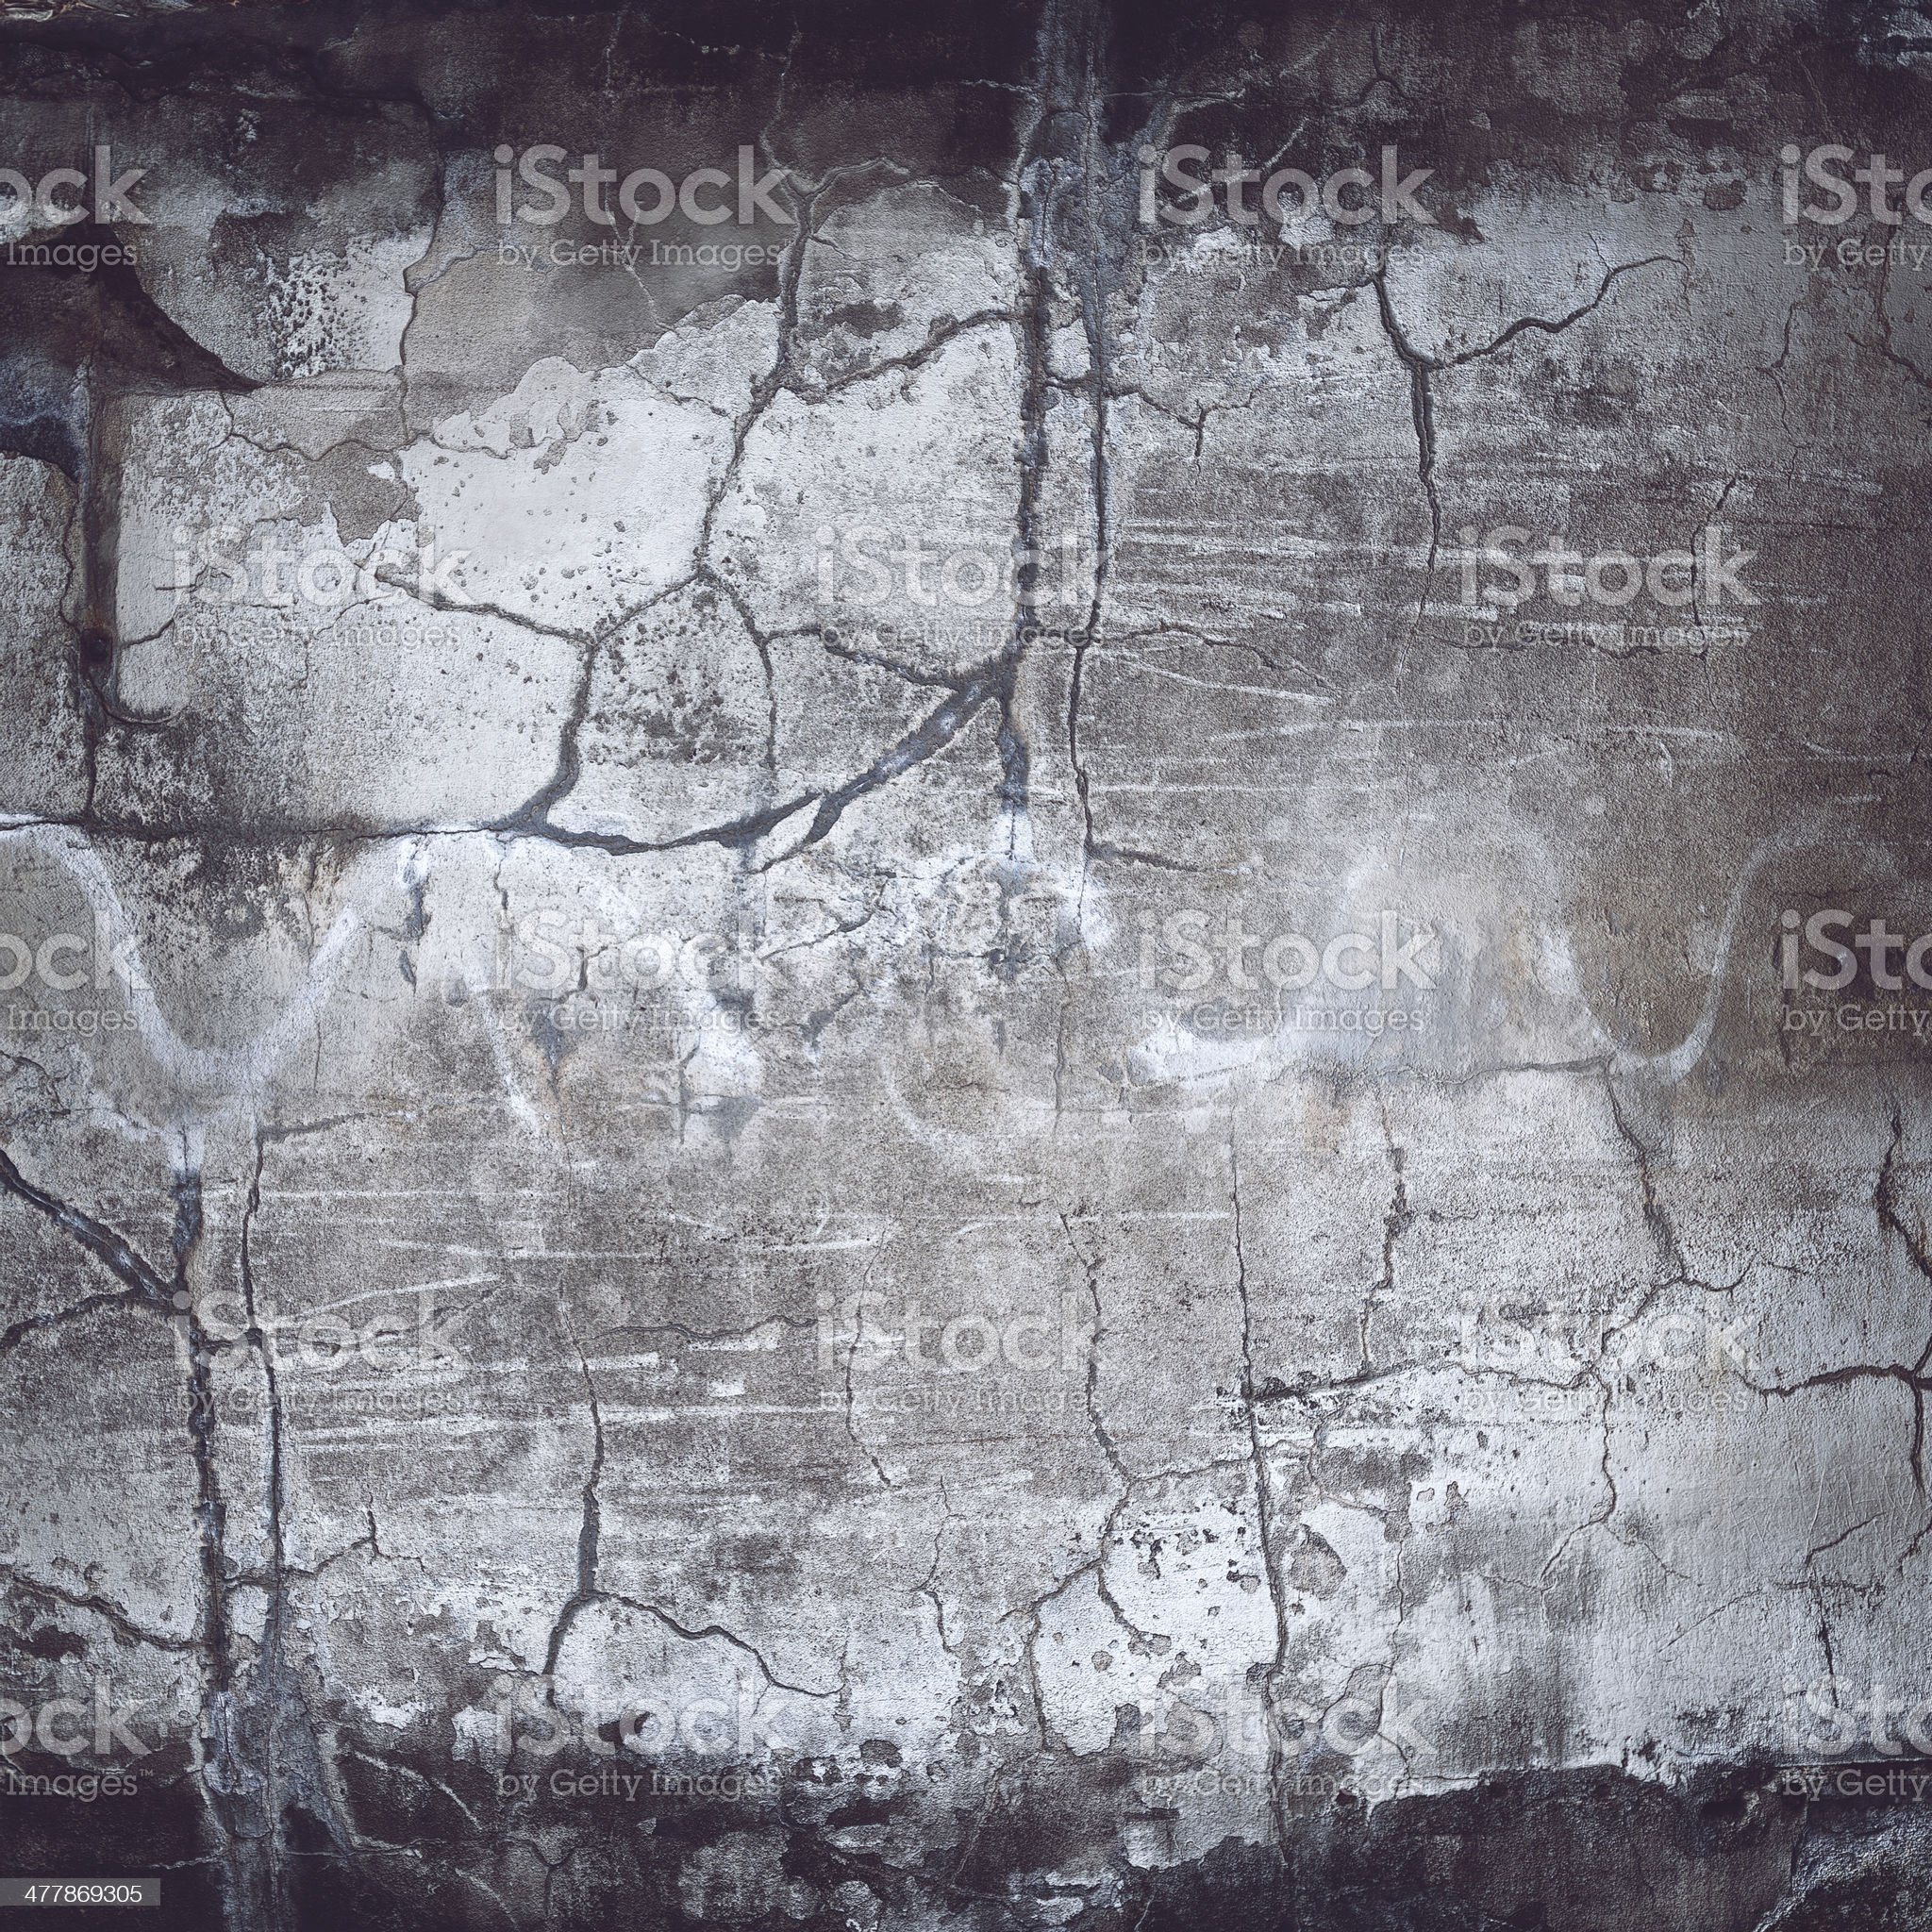 XXXL Cracked Grunge Wall Texture royalty-free stock photo